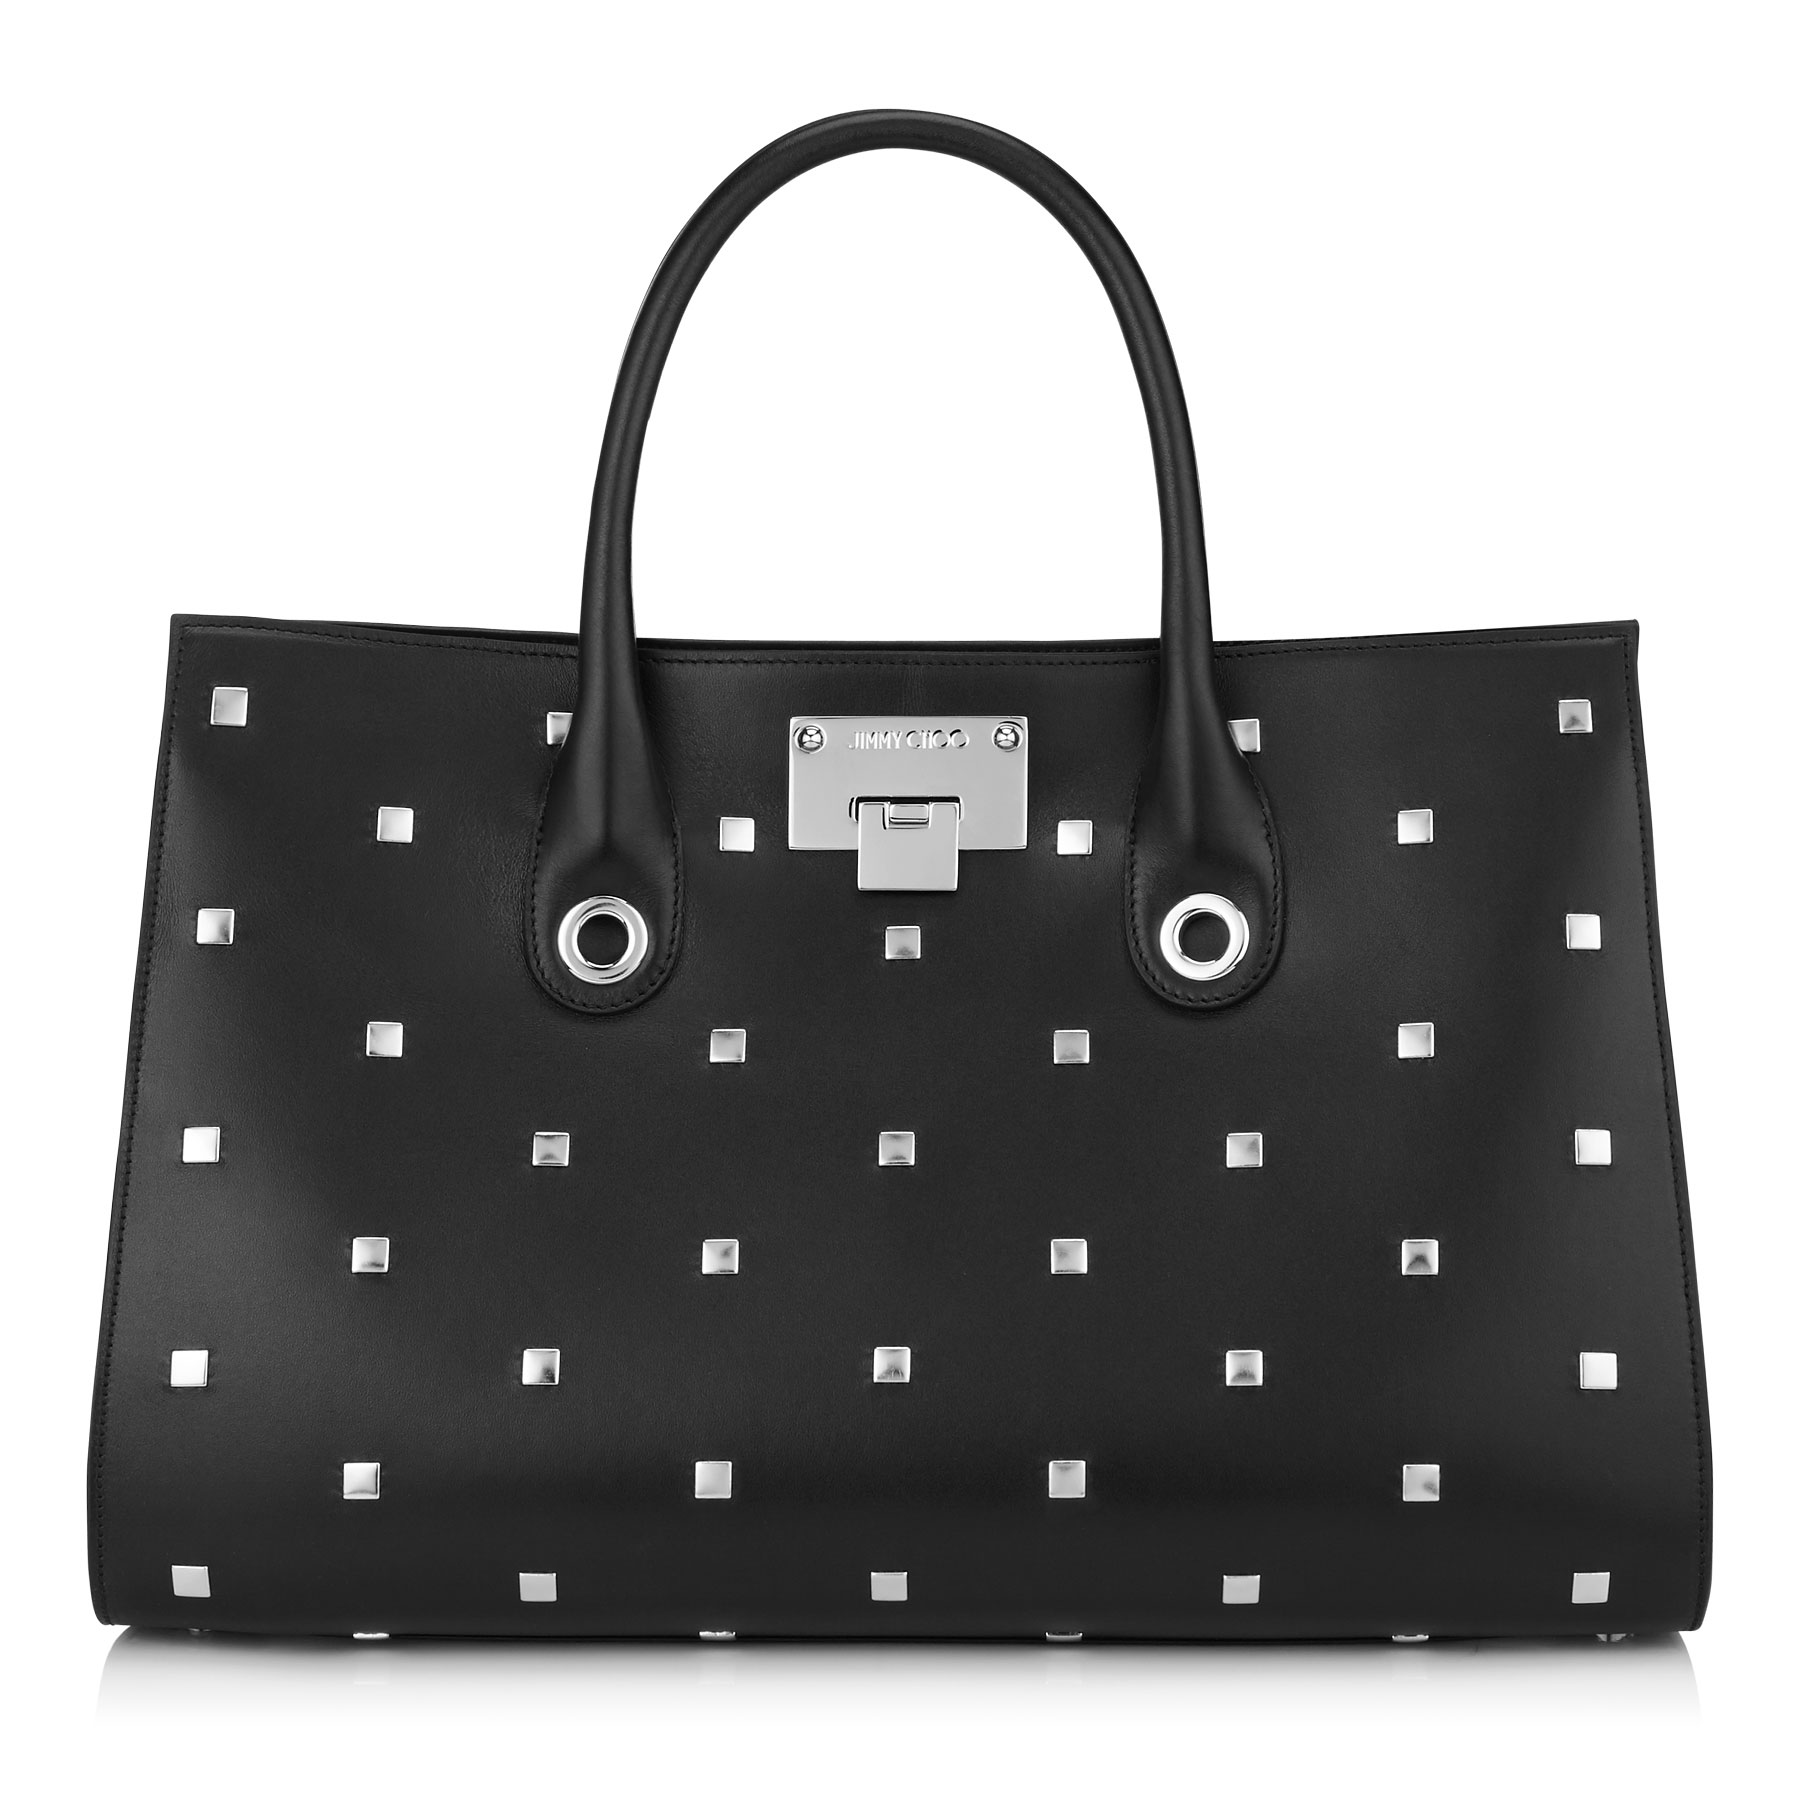 RILEY Black Smooth Leather with Square Studs Tote Bag